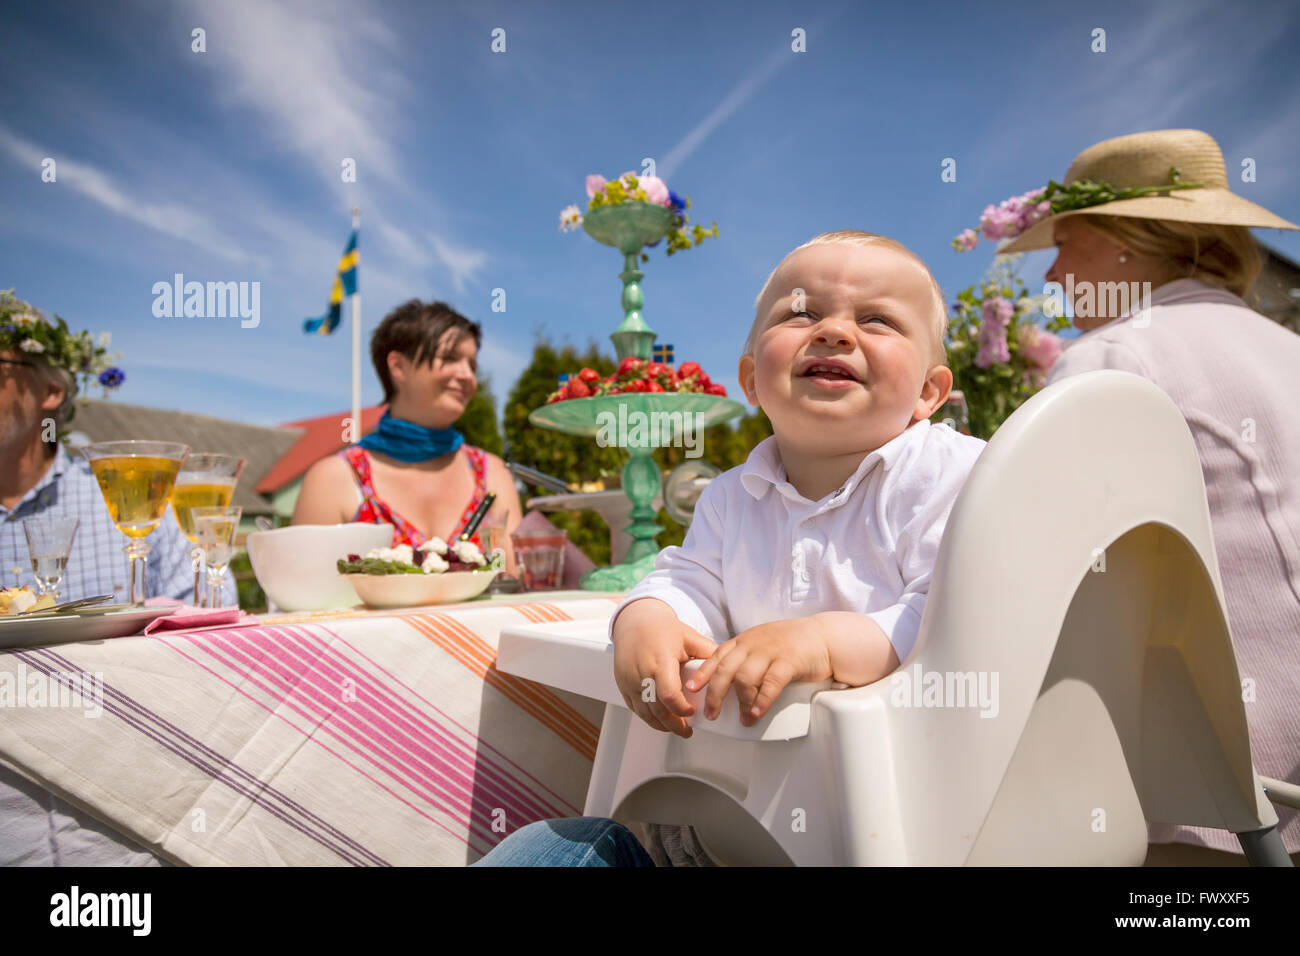 Sweden, Skane, Family with one child (0-1 month) during midsummer celebrations - Stock Image